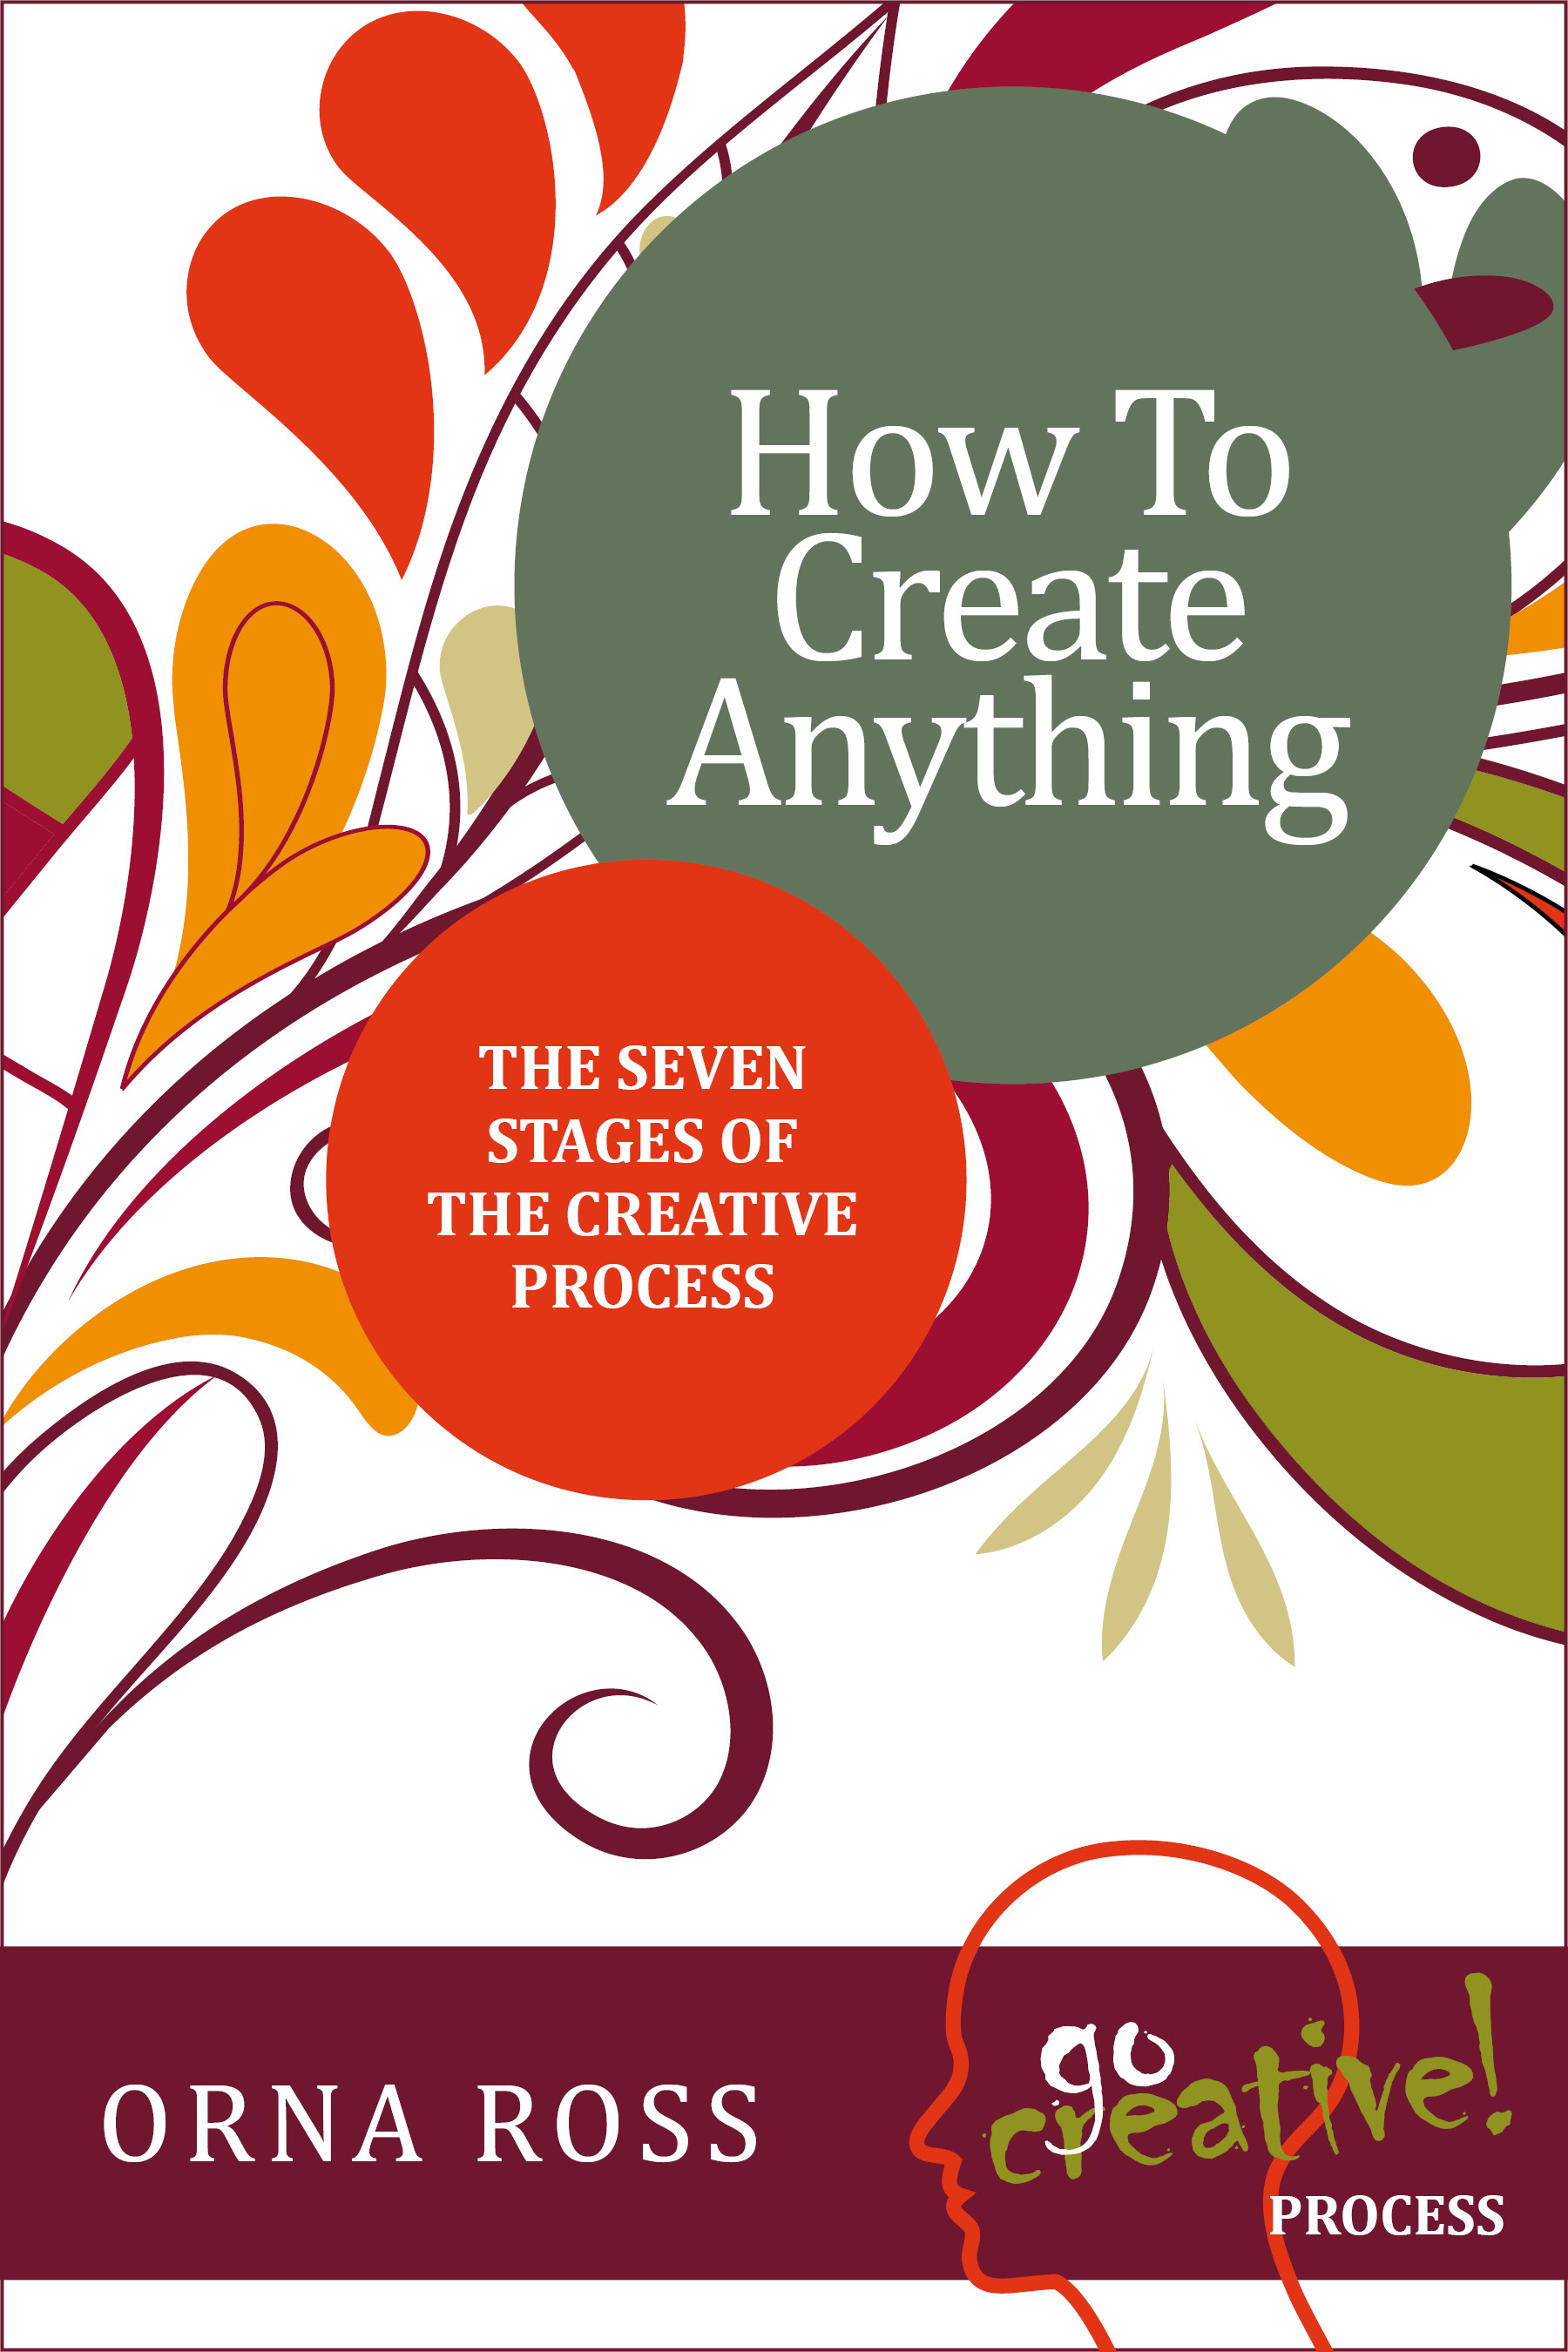 How To Make Creative Book Cover : The seven stages of creativity a new perspective on